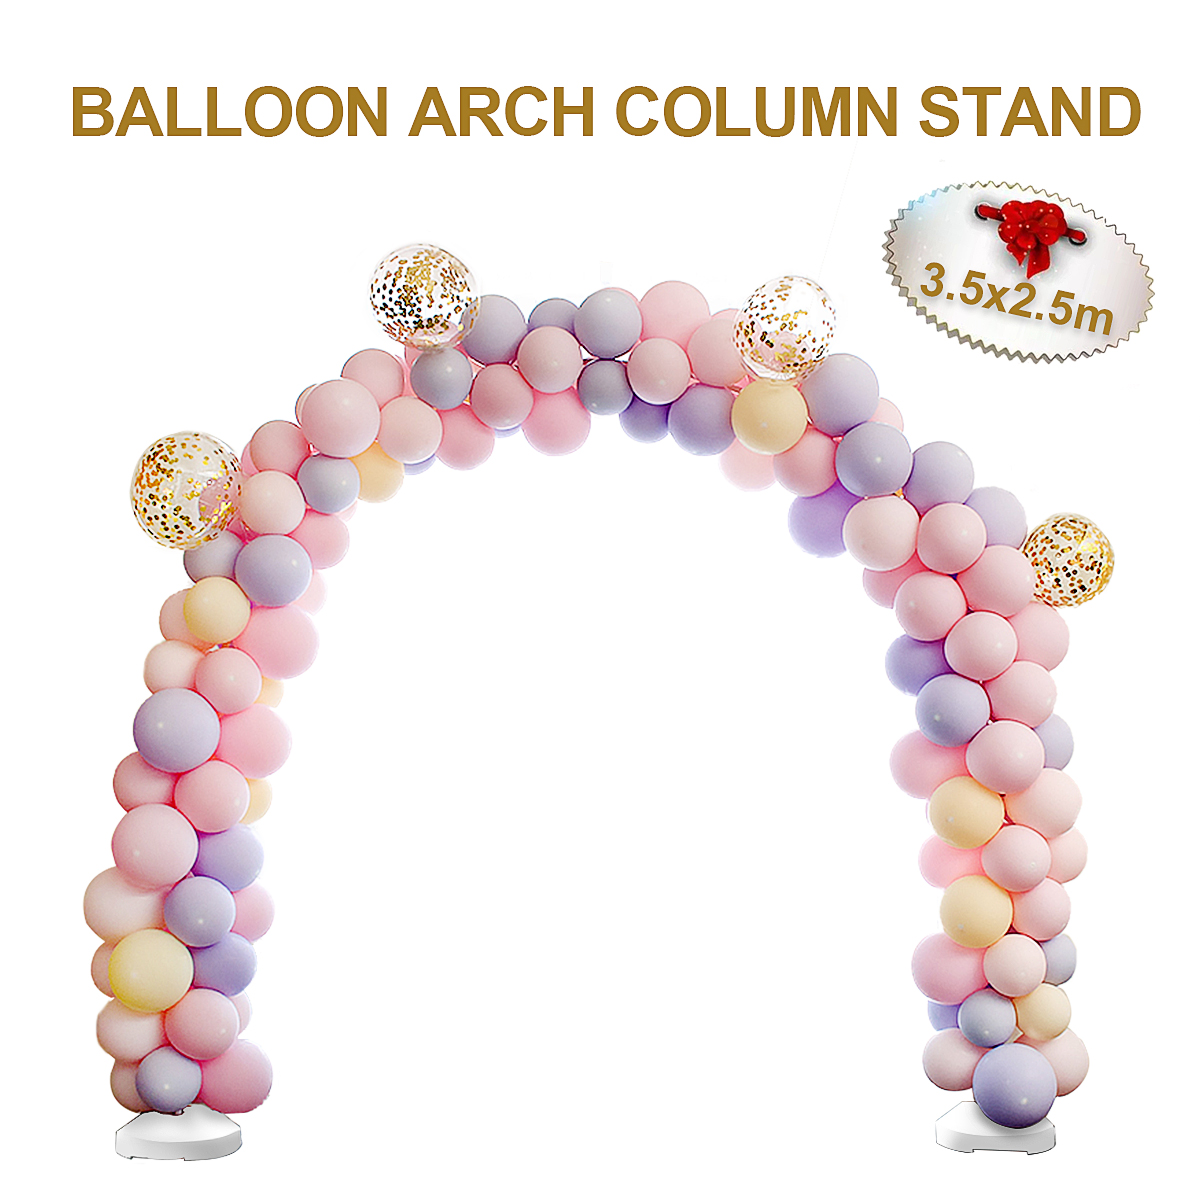 Balloon Column Kit Walmart Aliexpress Buy 14pcs Large Diy Balloon Arch Frame